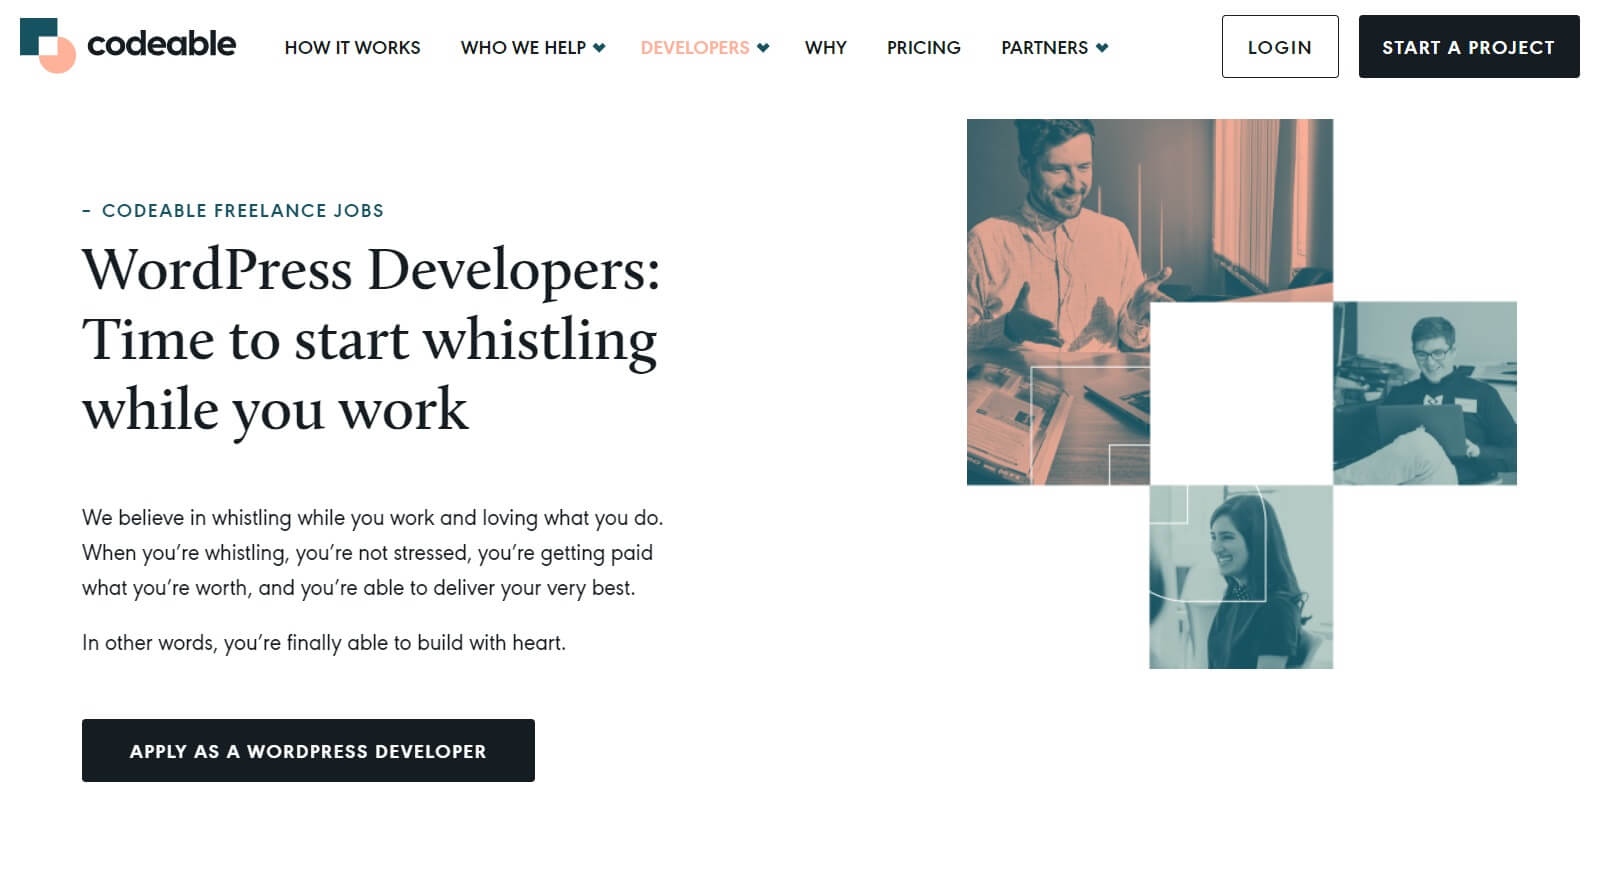 The Codeable developer page